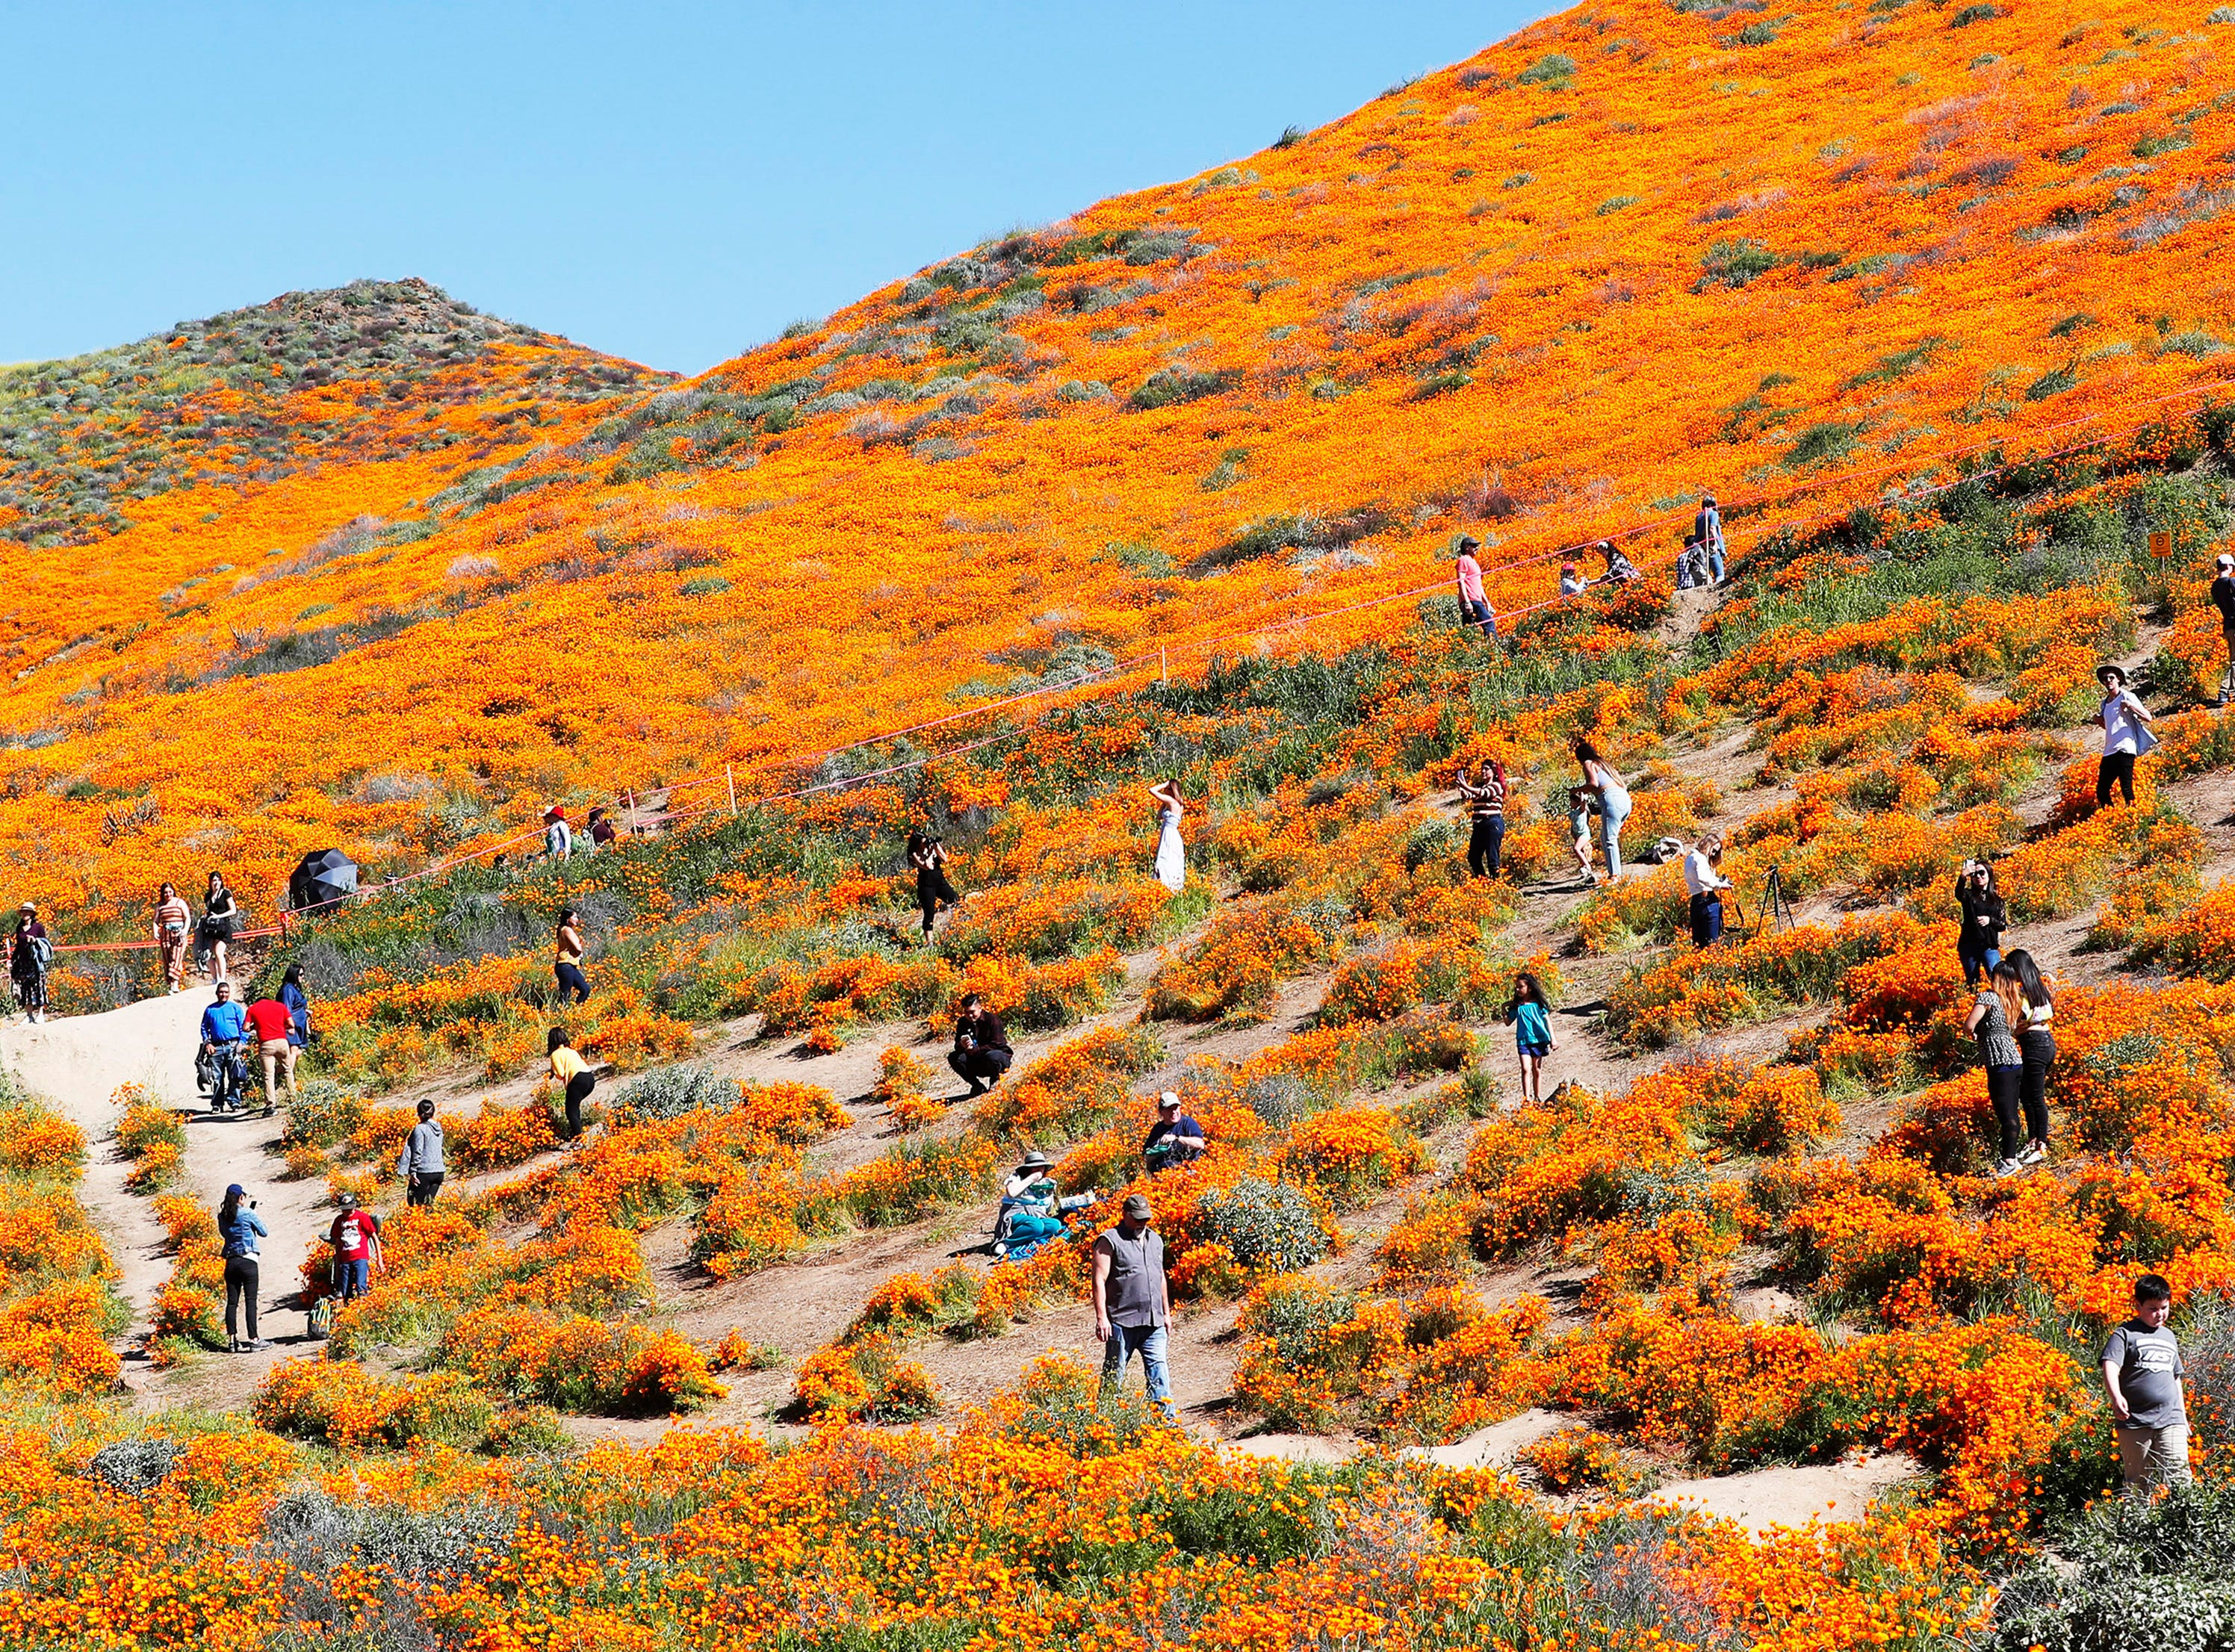 Visitors flood the poppy fields at Walker Canyon in Lake Elsinore, Calif. Sunday March 17, 2019. After massive crowds flooded the small community, city officials have shut down Walker Canyon to the public. No shuttles or visitors will be allowed.